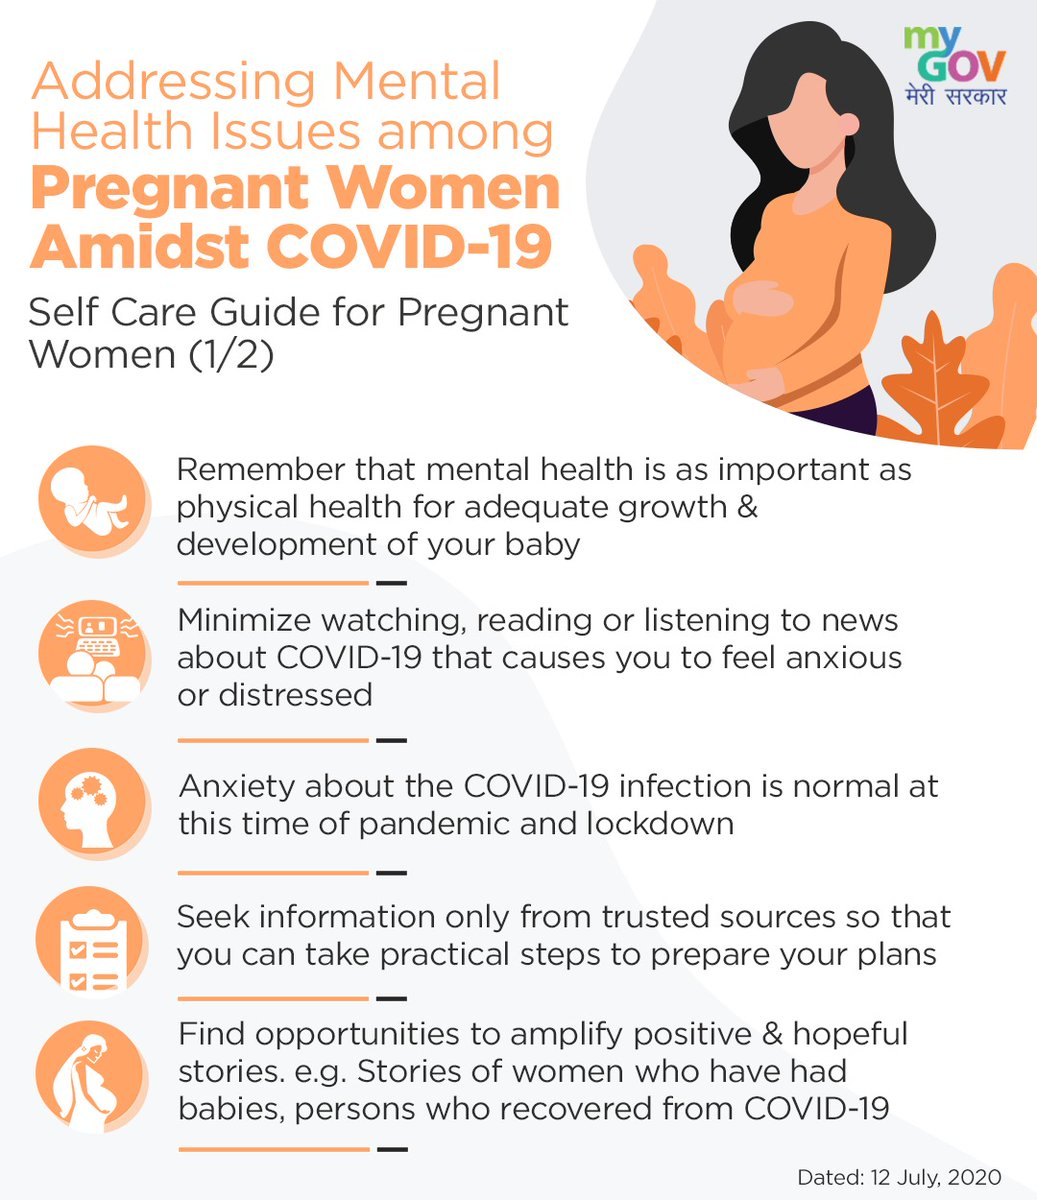 Take a look at the Self Care guide for Pregnant Women amidst COVID-19. #IndiaFightsCorona https://t.co/4cdzztQvTI